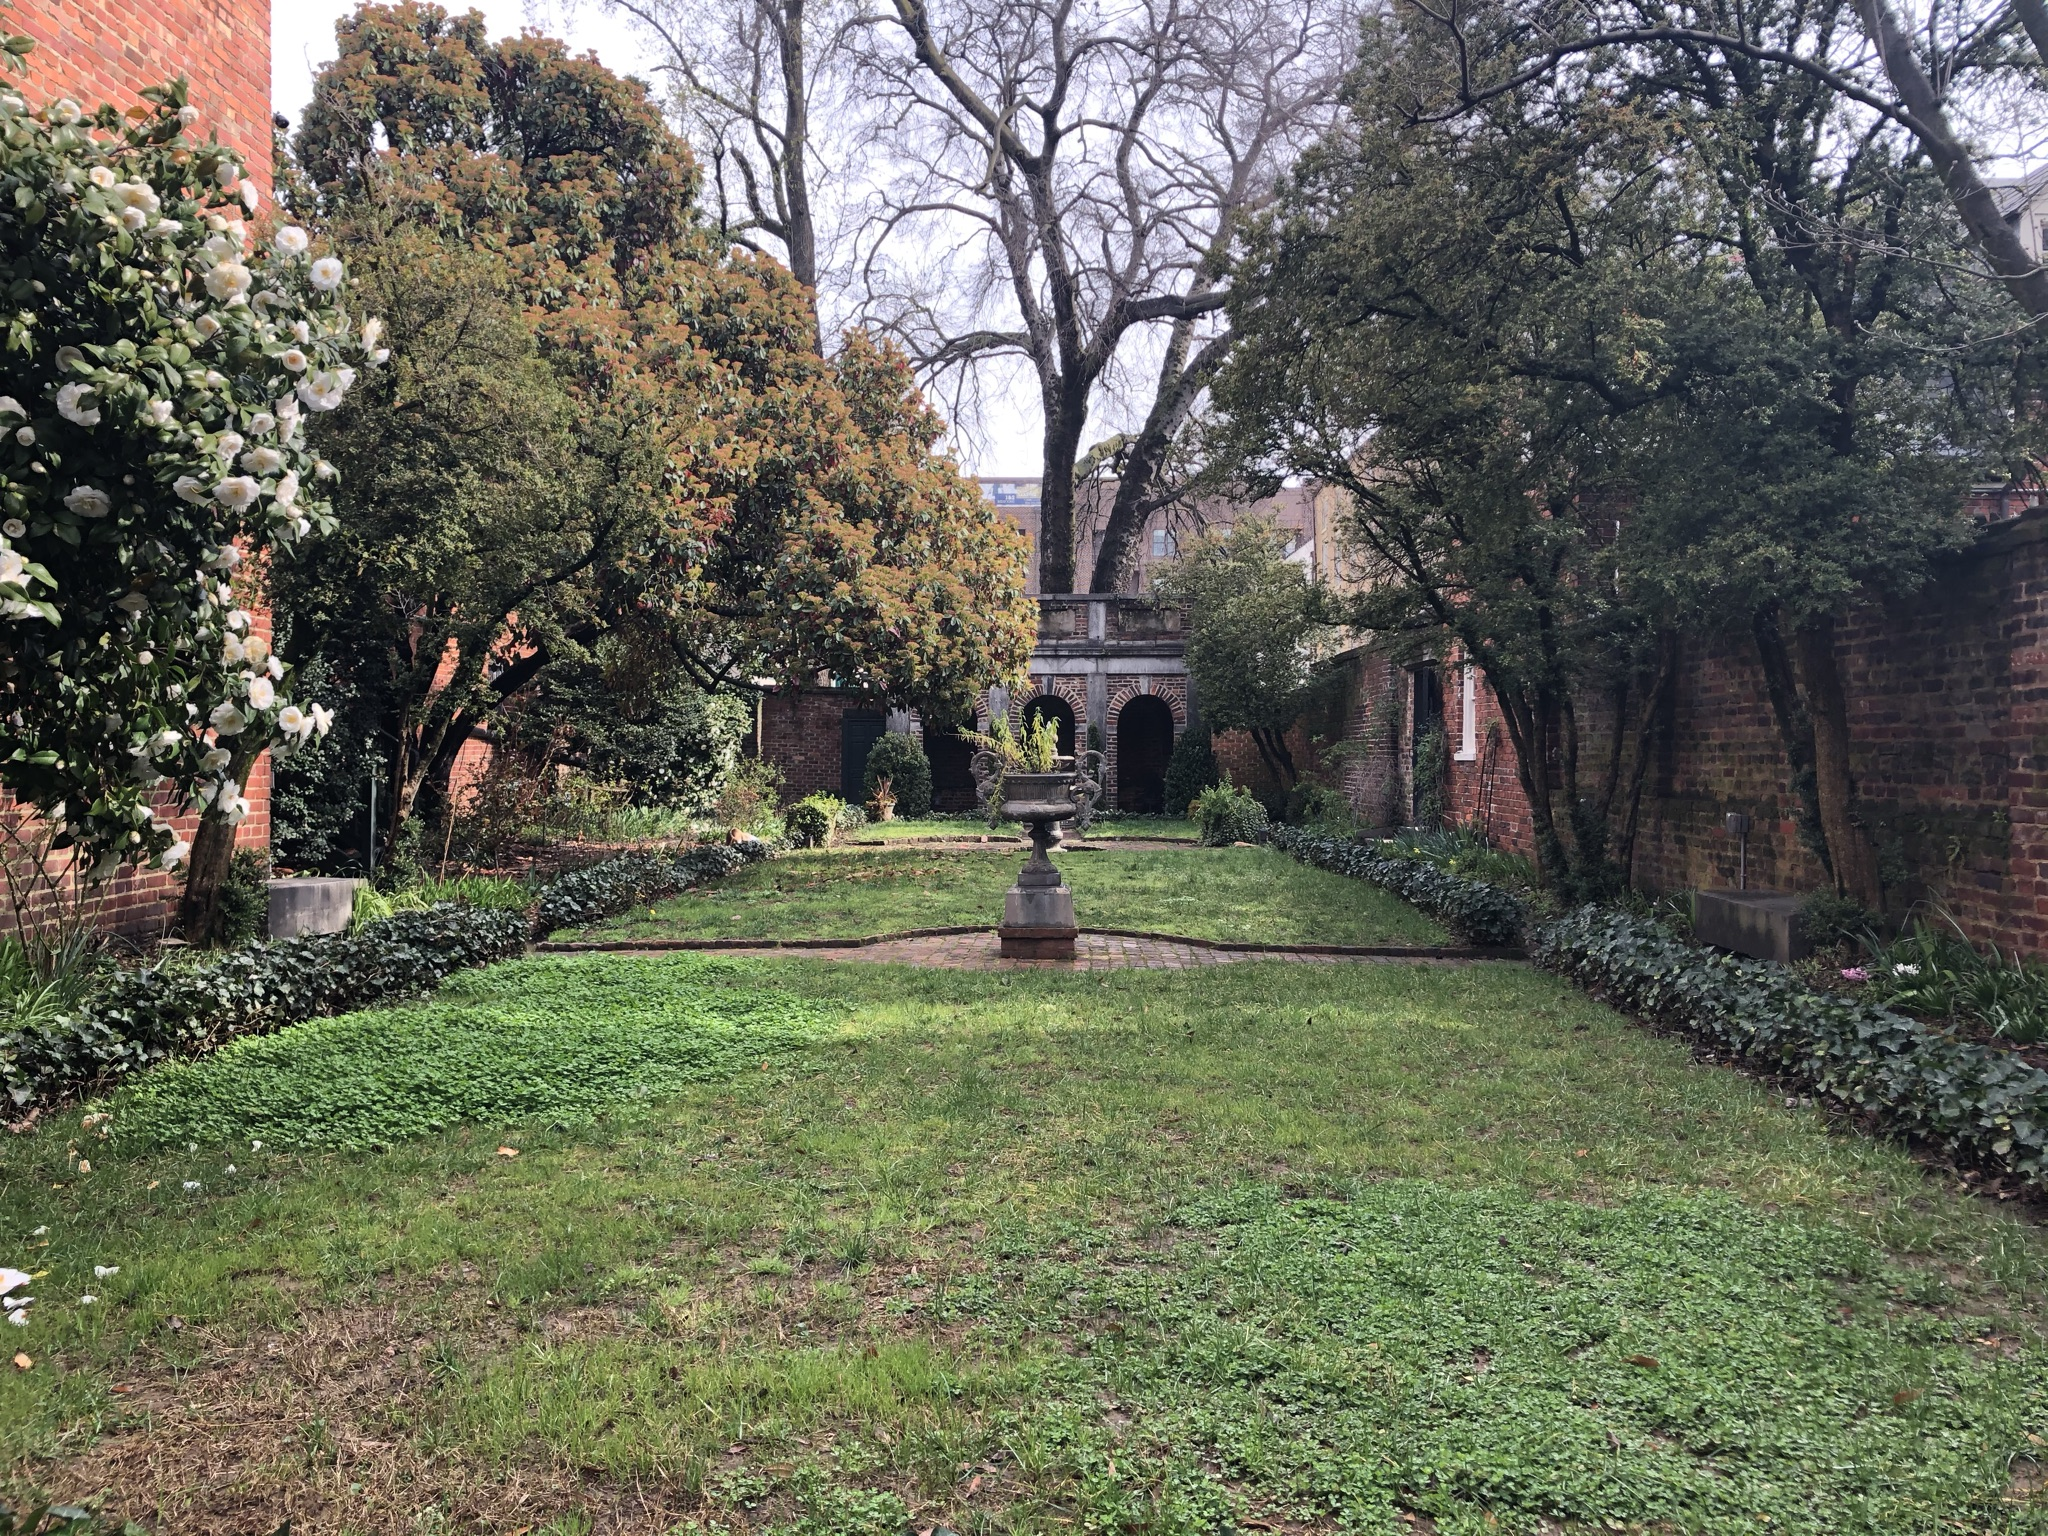 enchanted garden at the Poe Museum